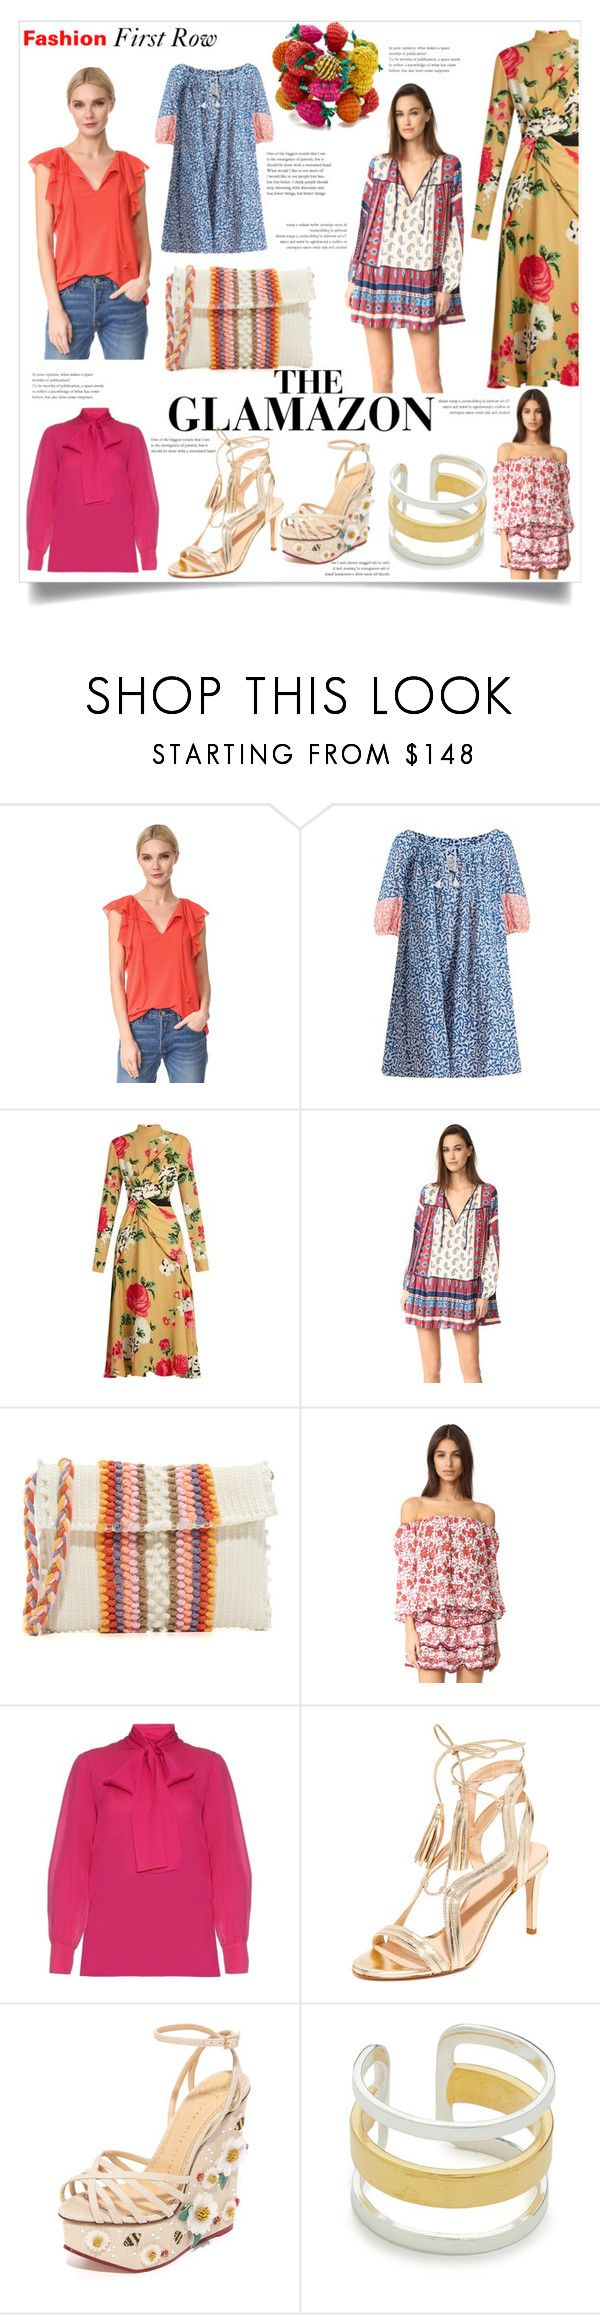 """Spring Fashion Fever!!!"" by bonnielindsay ❤ liked on Polyvore featuring FUZZI, Thierry Colson, MSGM, Suboo, Antonello, Poupette St Barth, Gucci, Club Monaco, Charlotte Olympia and Maya Magal"